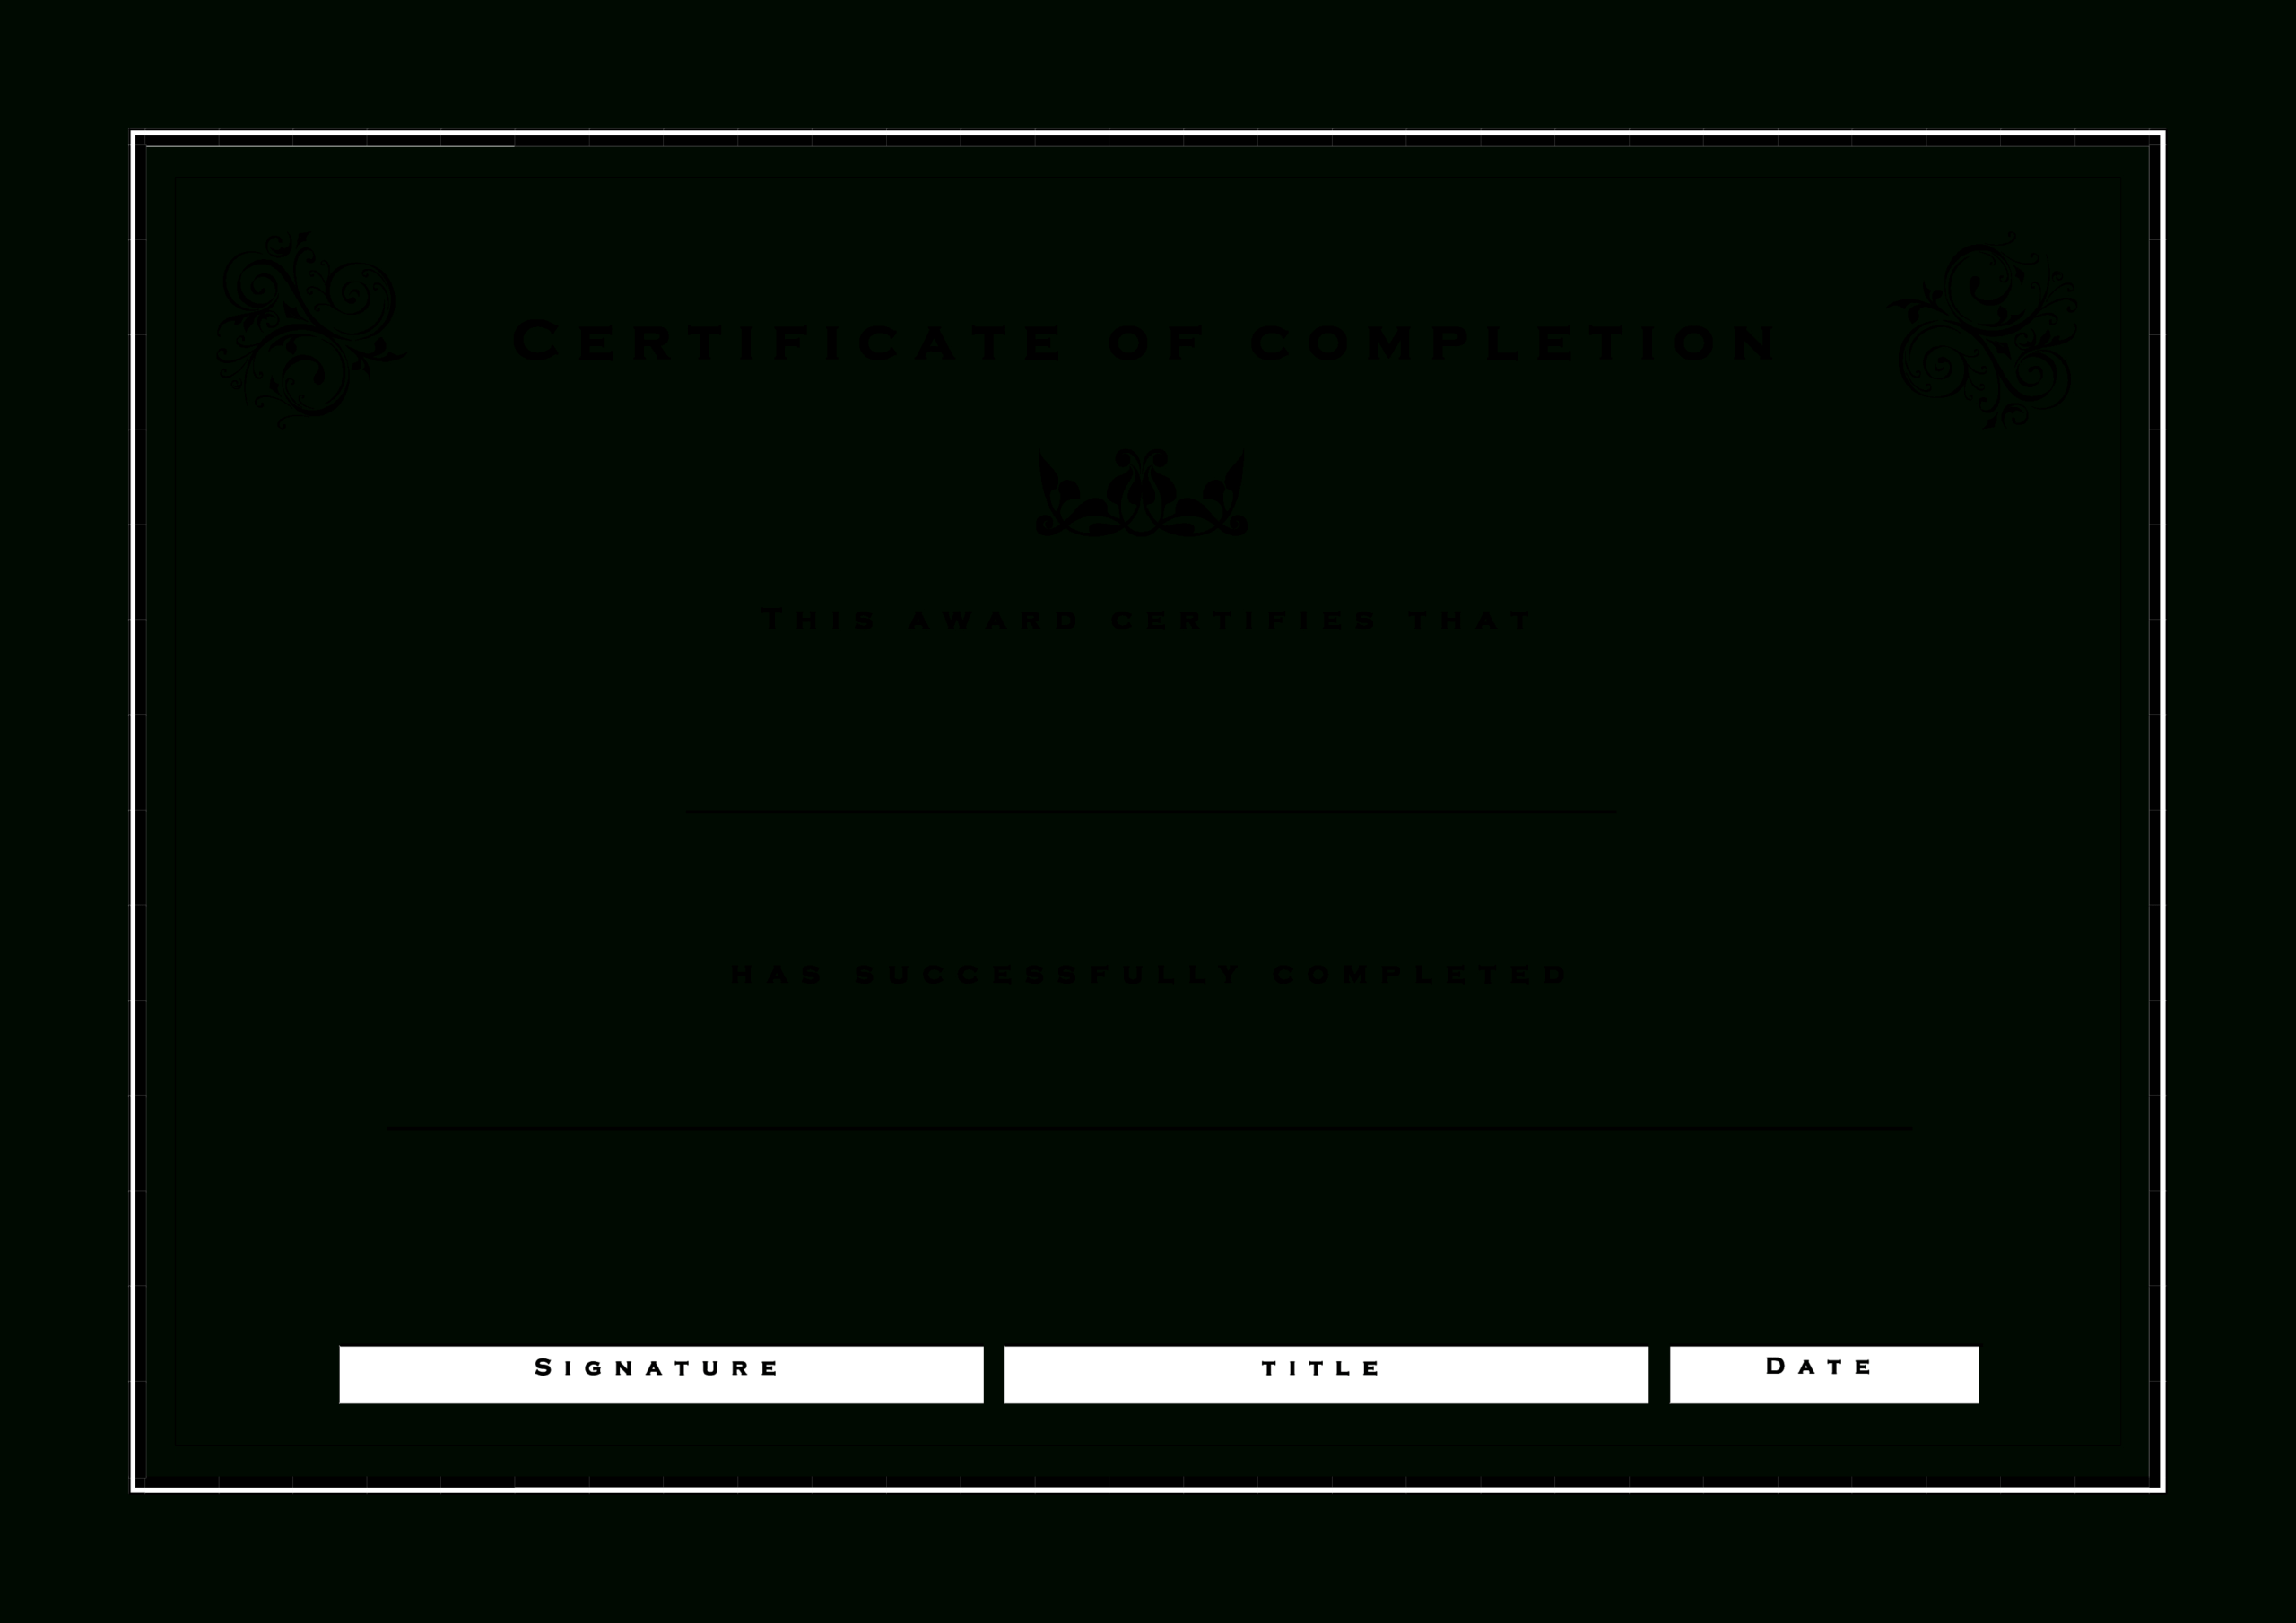 Formal Certificate Of Completion | Templates At For Certificate Of Compliance Template